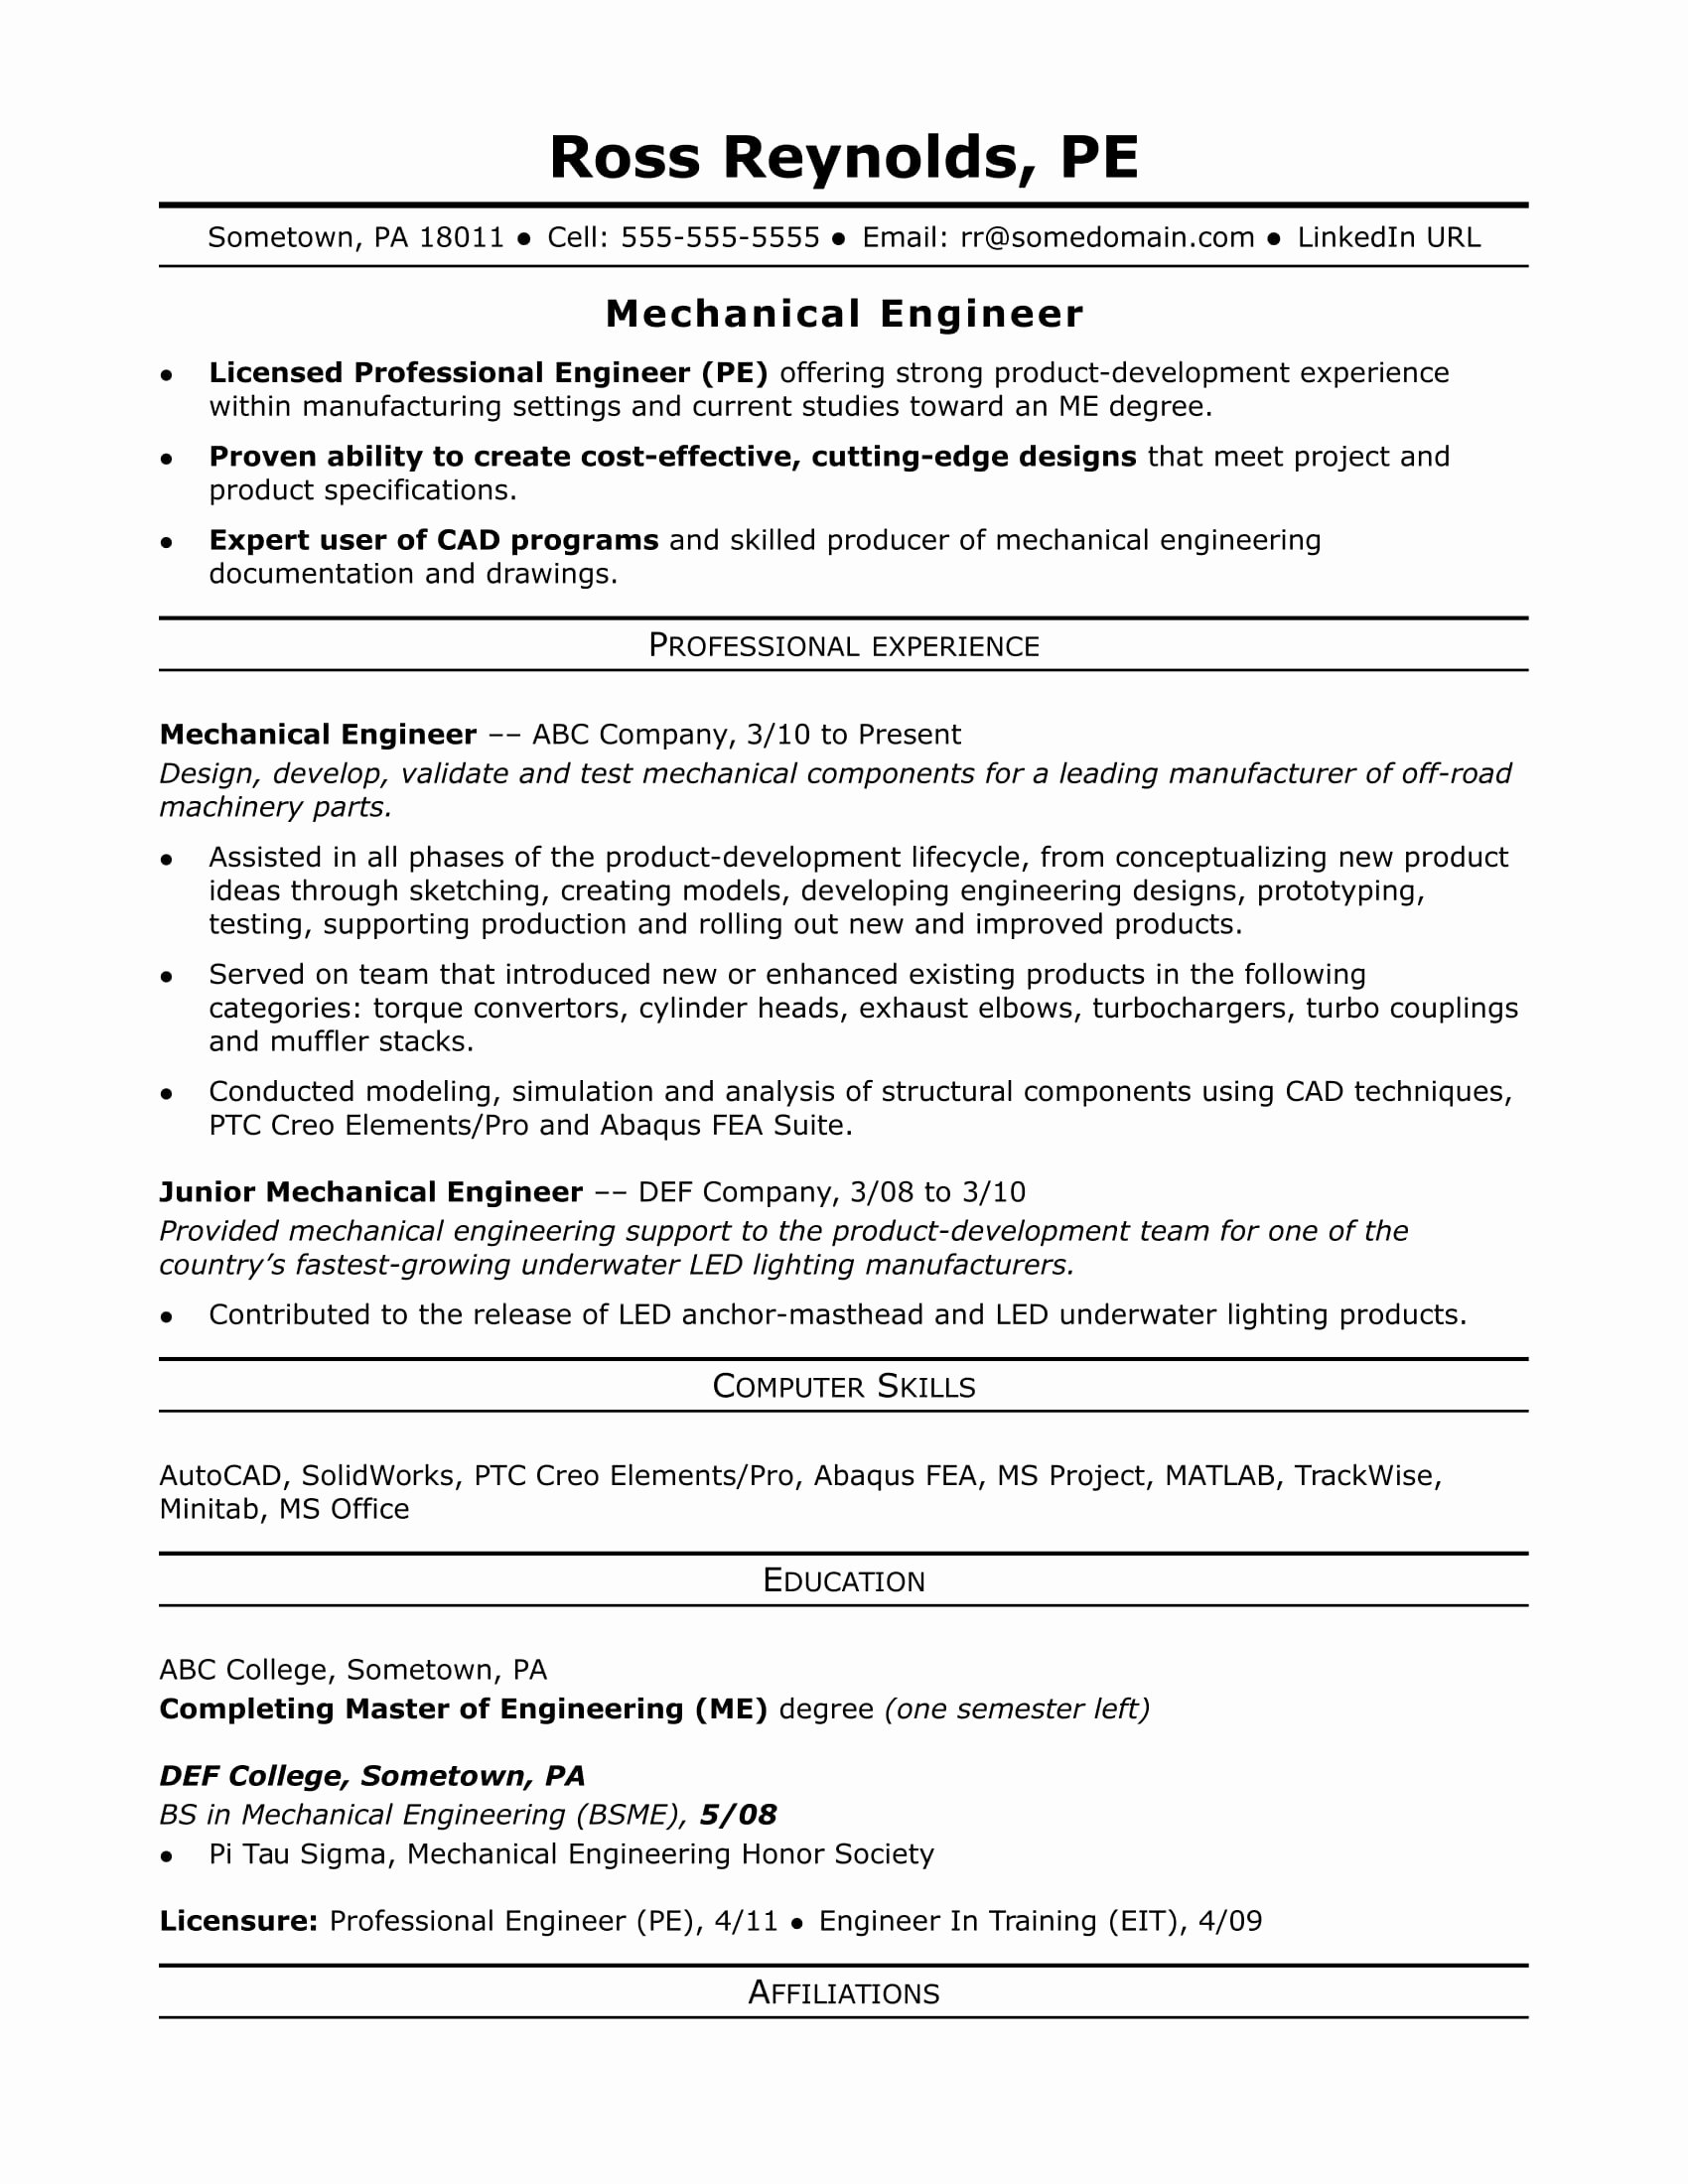 Engineer Resume Template Word Luxury Sample Resume for A Midlevel Mechanical Engineer